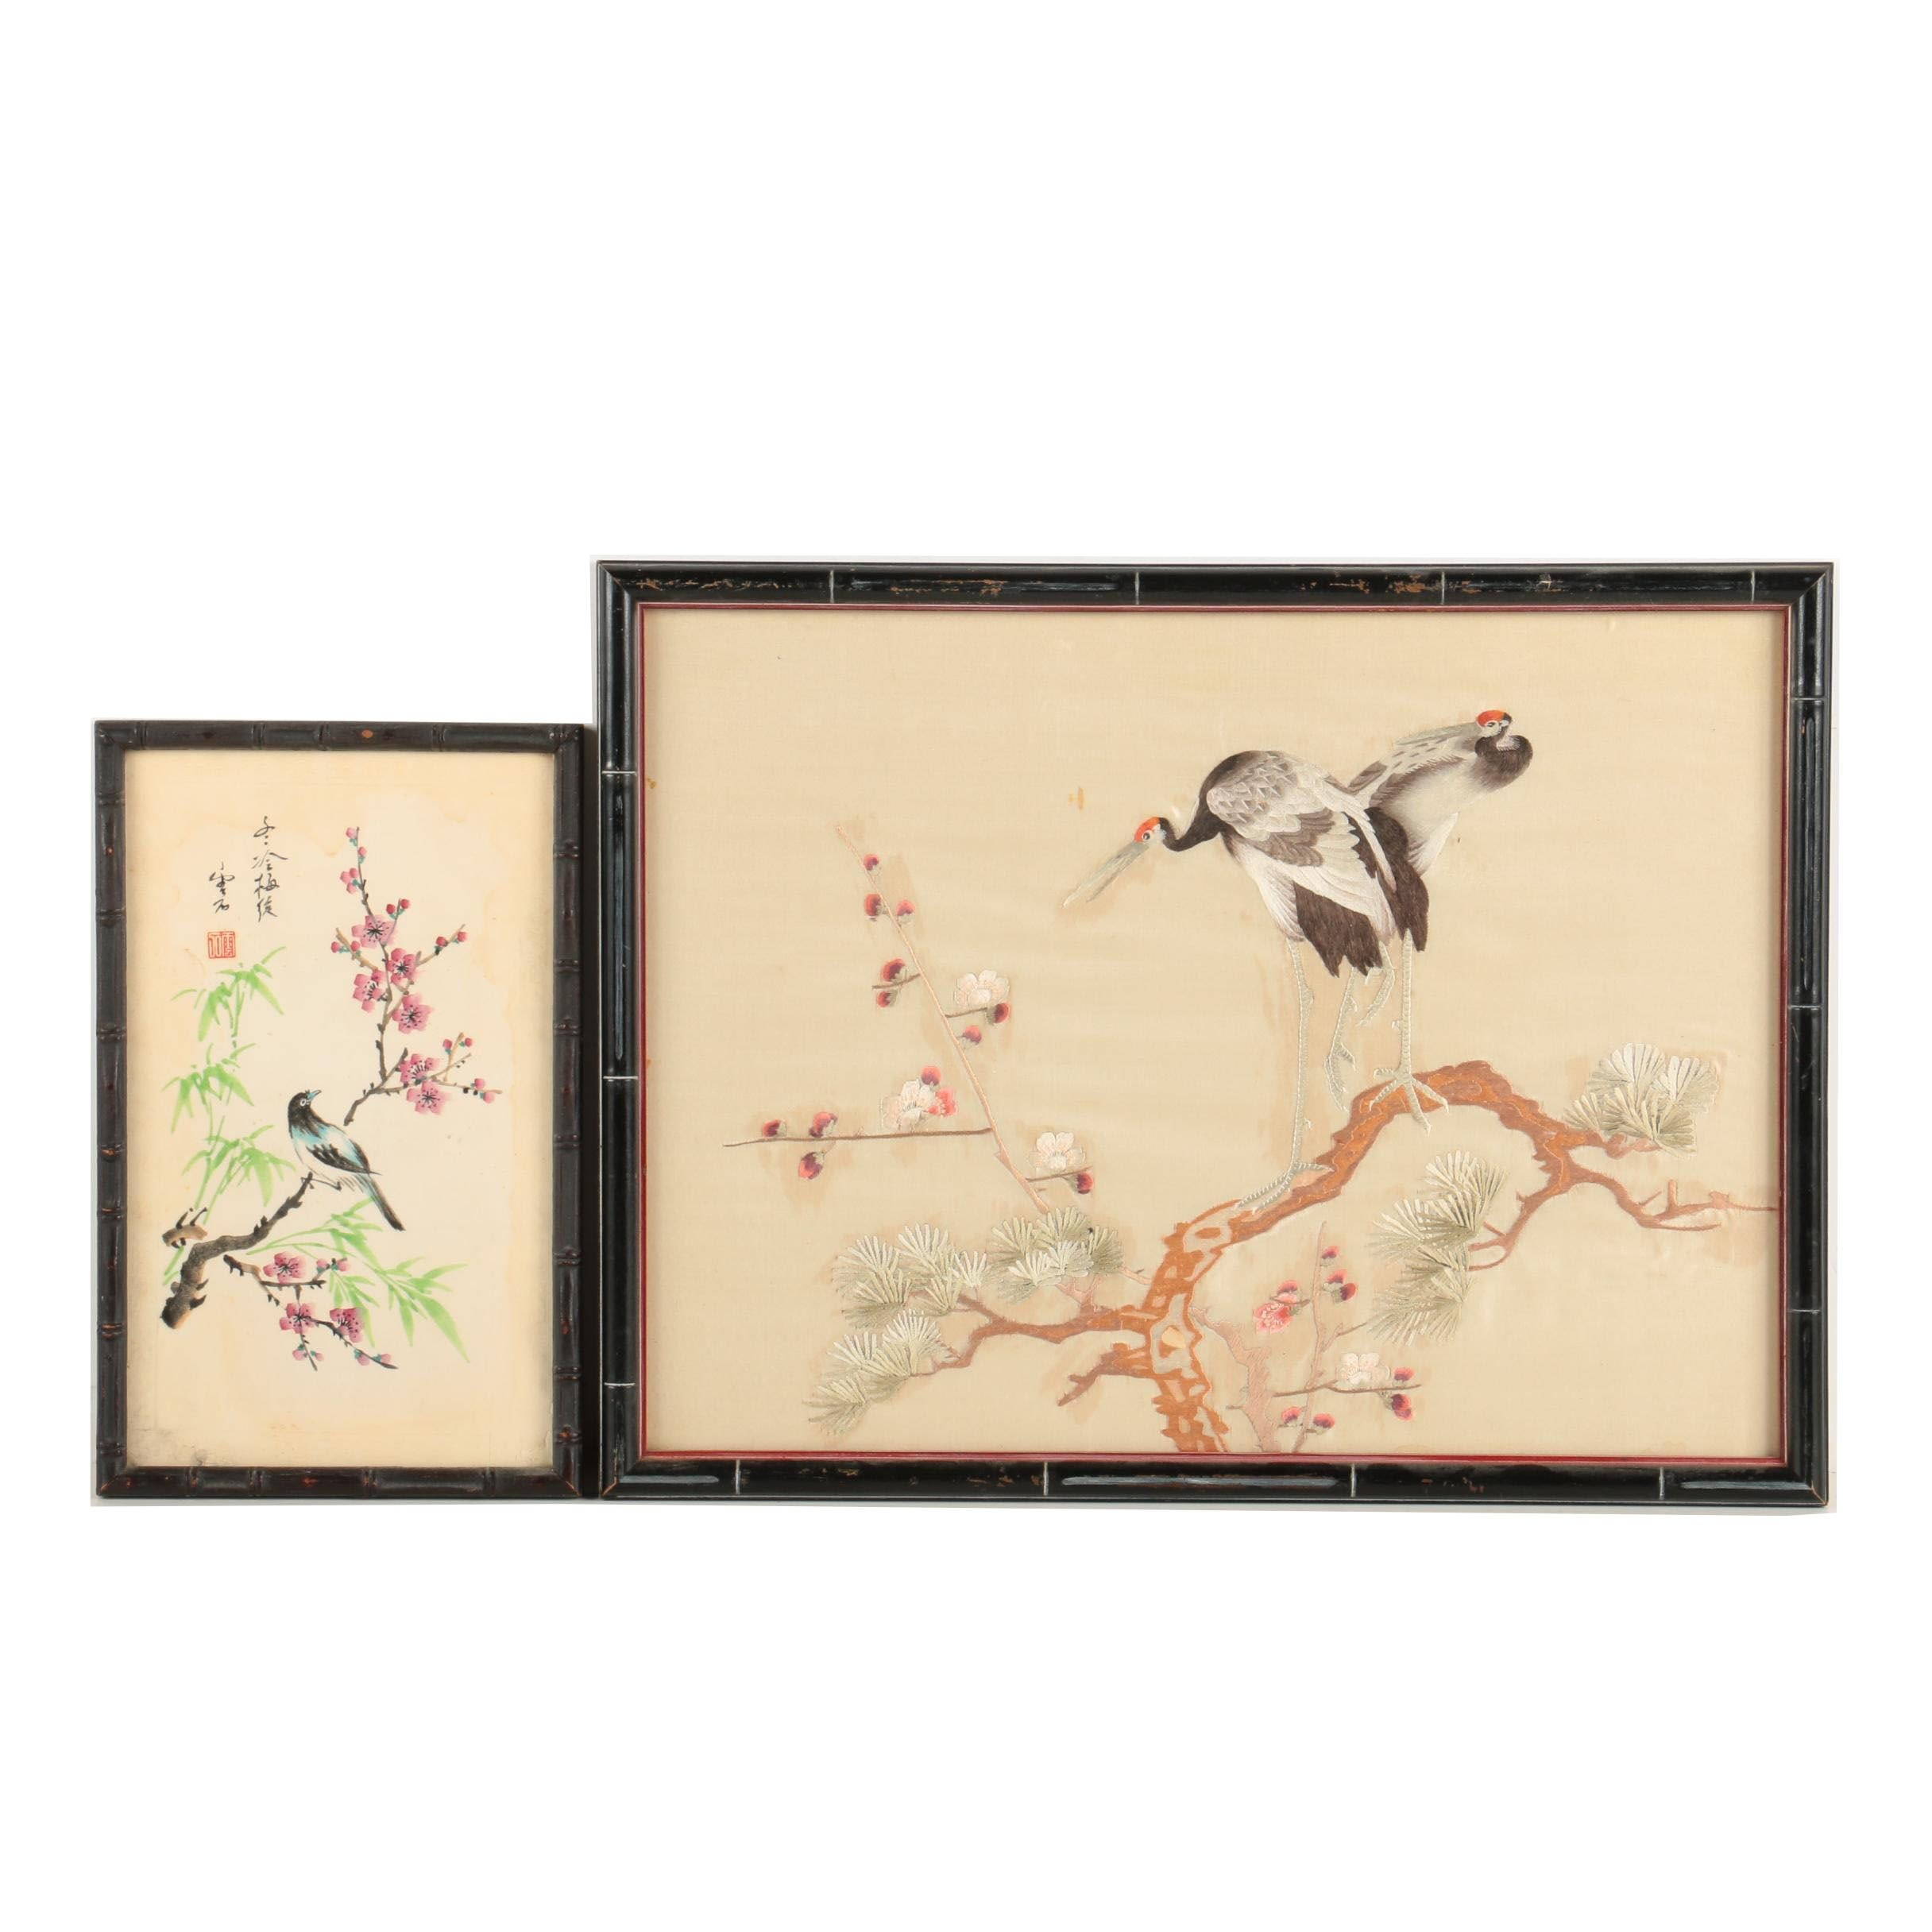 Chinese Embroidery and Painting of Birds